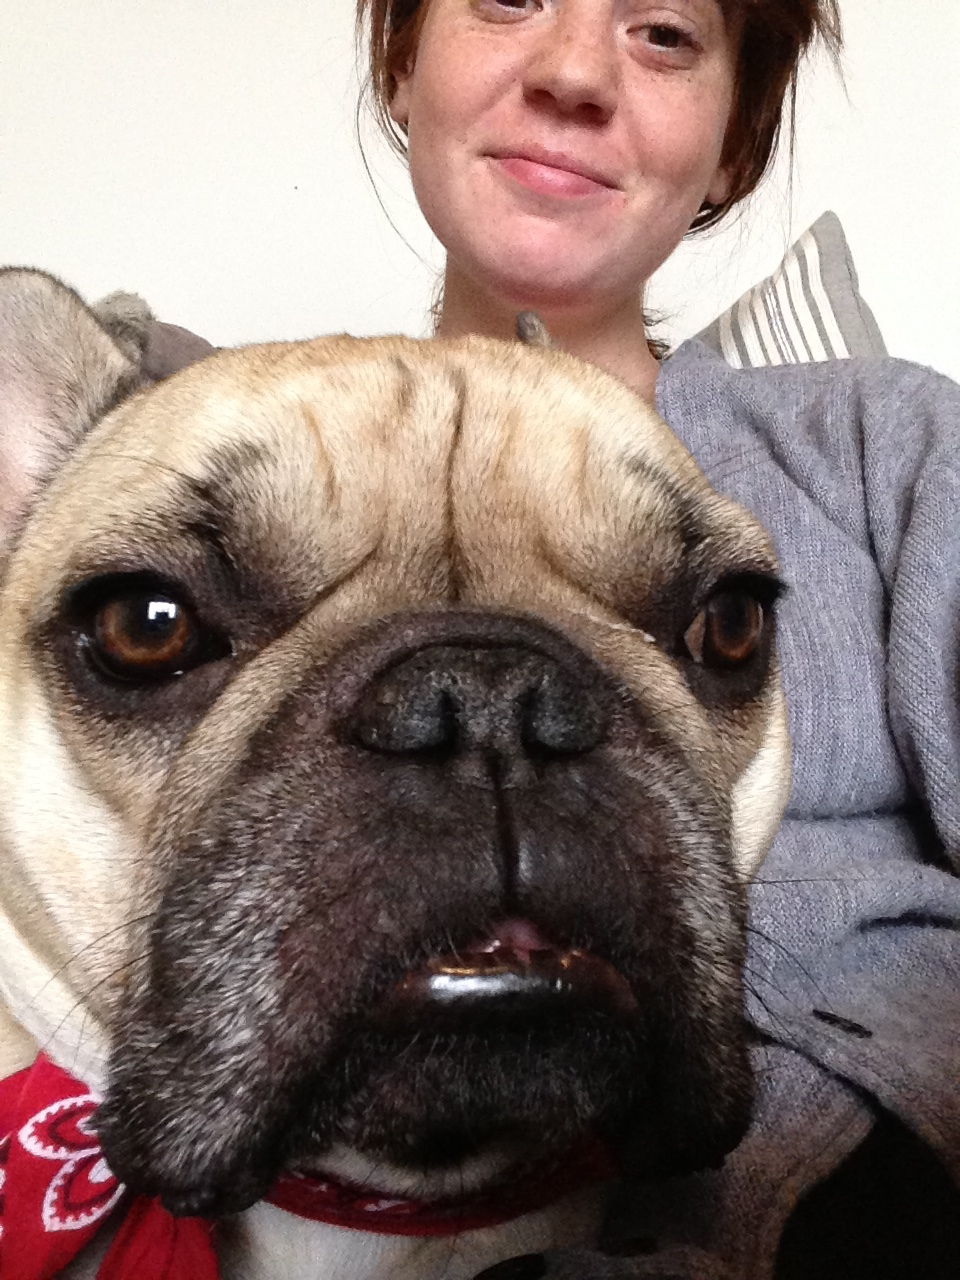 """June with charge Steak, a French Bulldog. June has walked over 7 """"Frenchies,"""" including one pack of 3 who """"had to stop and sniff EVERYTHING."""" Credit: June B."""